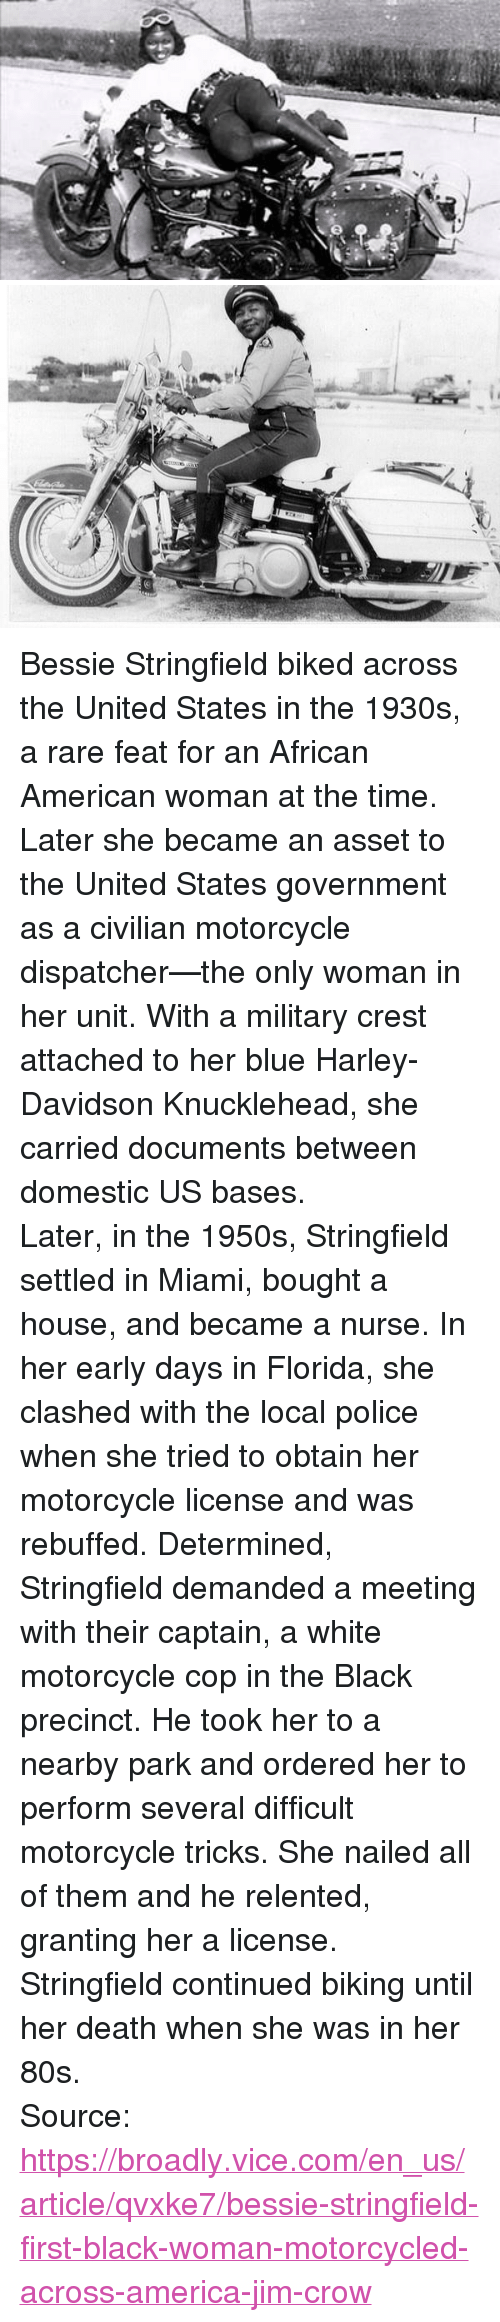 """Biking: <p>Bessie Stringfield biked across the United States in the 1930s, a rare feat for an African American woman at the time. Later she became an asset to the United States government as a civilian motorcycle dispatcher—the only woman in her unit. With a military crest attached to her blue Harley-Davidson Knucklehead, she carried documents between domestic US bases.</p>  <p>Later, in the 1950s, Stringfield settled in Miami, bought a house, and became a nurse. In her early days in Florida, she clashed with the local police when she tried to obtain her motorcycle license and was rebuffed. Determined, Stringfield demanded a meeting with their captain, a white motorcycle cop in the Black precinct. He took her to a nearby park and ordered her to perform several difficult motorcycle tricks. She nailed all of them and he relented, granting her a license.</p>  <p>Stringfield continued biking until her death when she was in her 80s.</p>  Source: <a href=""""https://broadly.vice.com/en_us/article/qvxke7/bessie-stringfield-first-black-woman-motorcycled-across-america-jim-crow"""">https://broadly.vice.com/en_us/article/qvxke7/bessie-stringfield-first-black-woman-motorcycled-across-america-jim-crow</a>"""